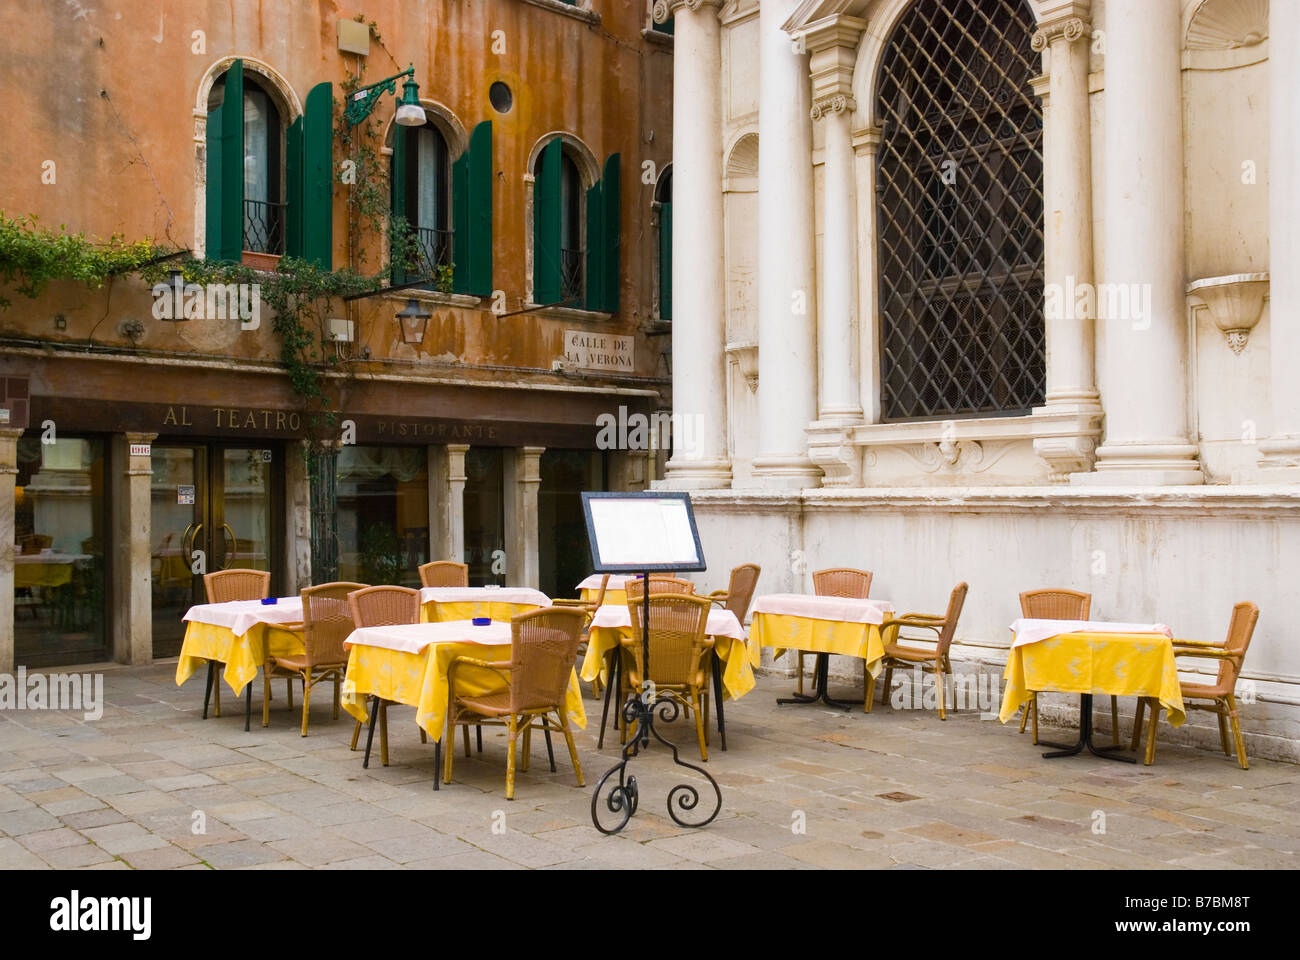 Restaurant at Teatro la Fenice in San Marco district of Venice Italy ...